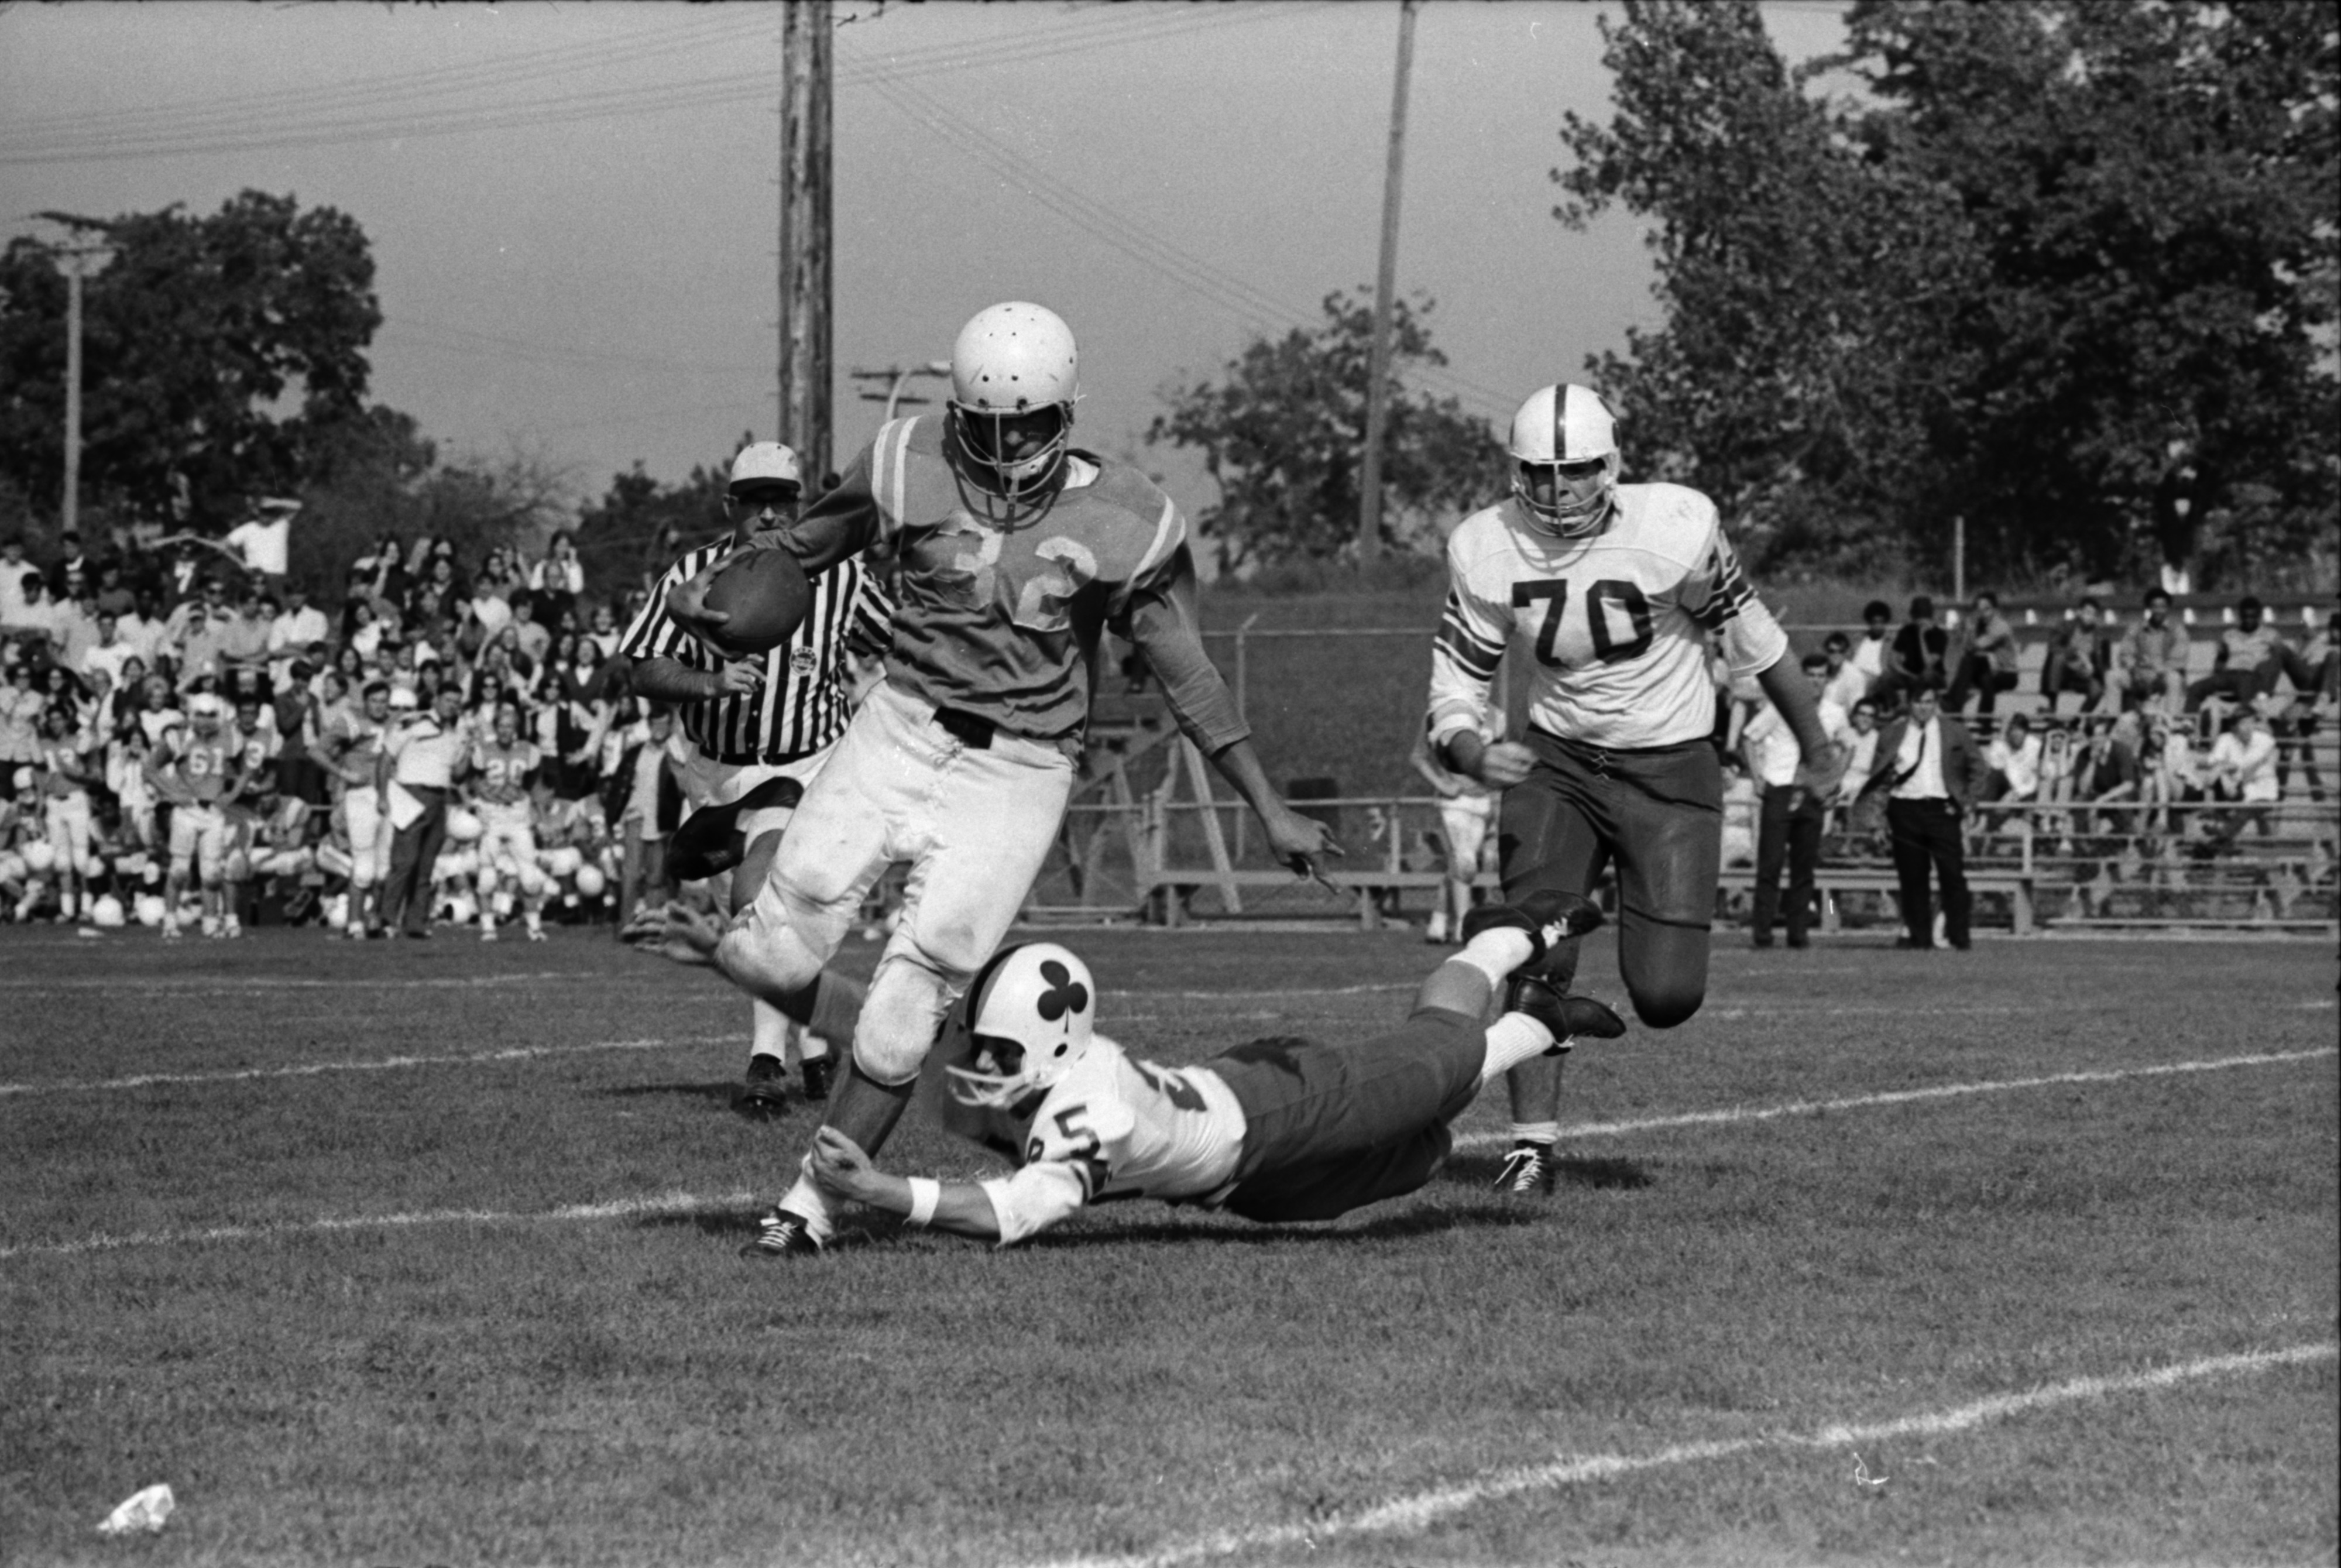 Football: St. Thomas High Versus St. Francis High, September 1969 image